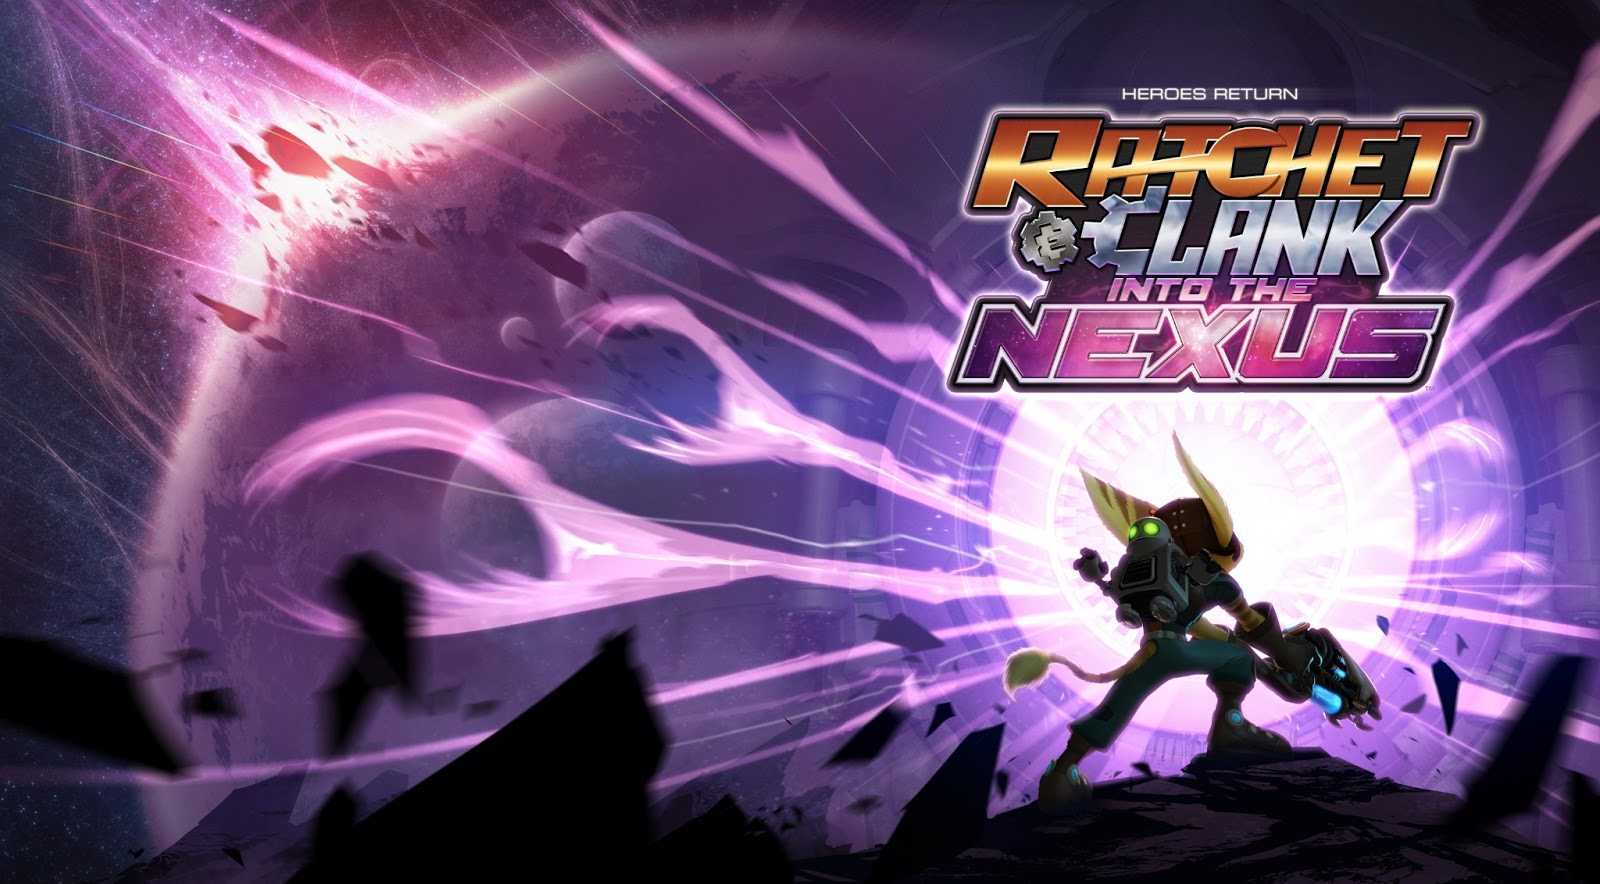 Free Ratchet & Clank Into the Nexus Wallpapers - ratchet and clank into the nexus game wallpapers